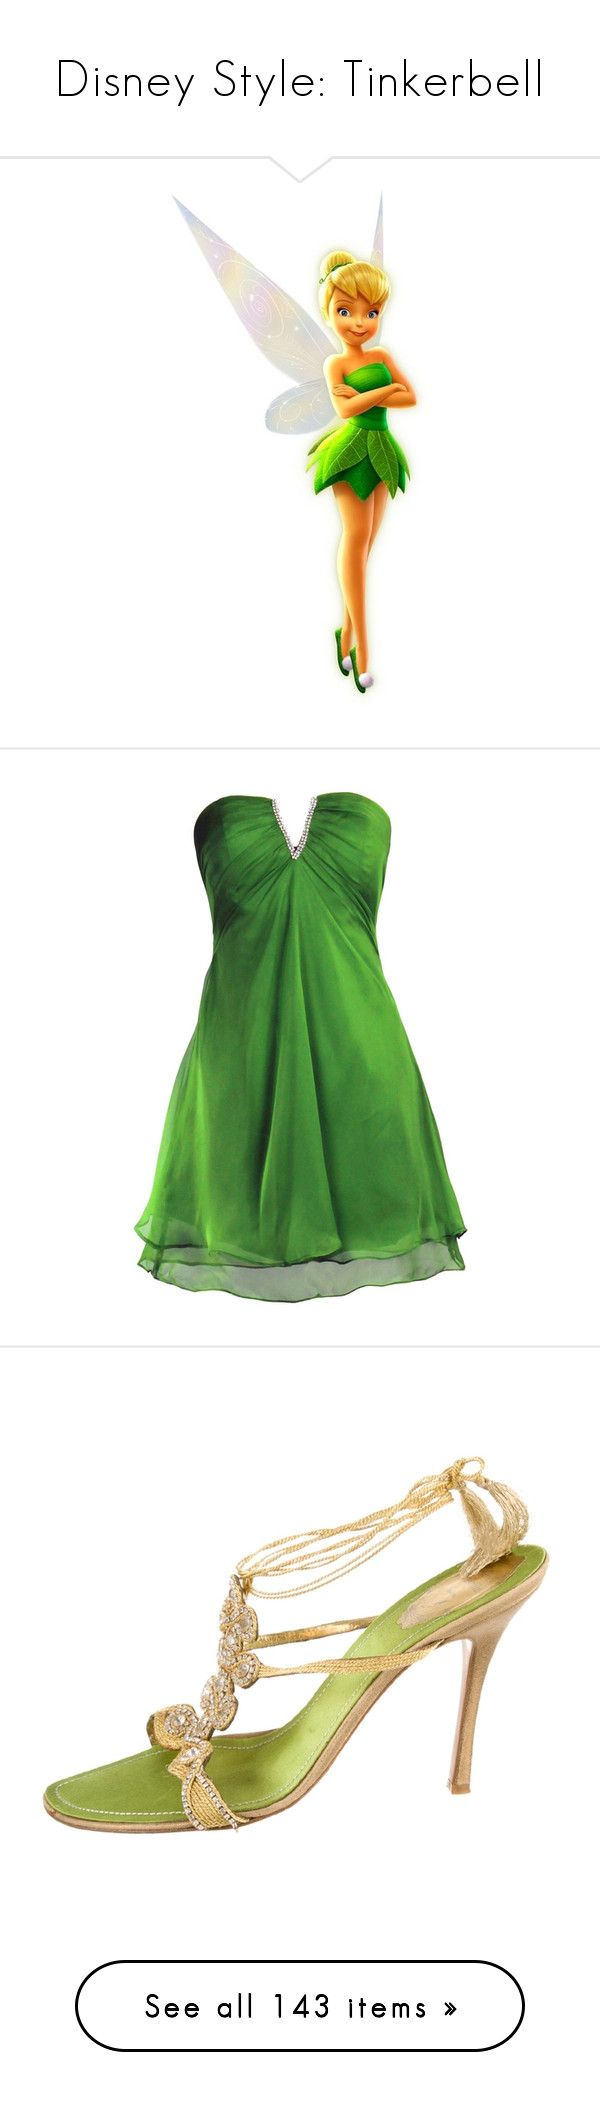 """""""Disney Style: Tinkerbell"""" by shannen-legere-lavigne ❤ liked on Polyvore featuring disney, tinkerbell, characters, fairies, people, dresses, short dresses, green bridesmaid dresses, bridesmaid cocktail dresses and green mini dress"""